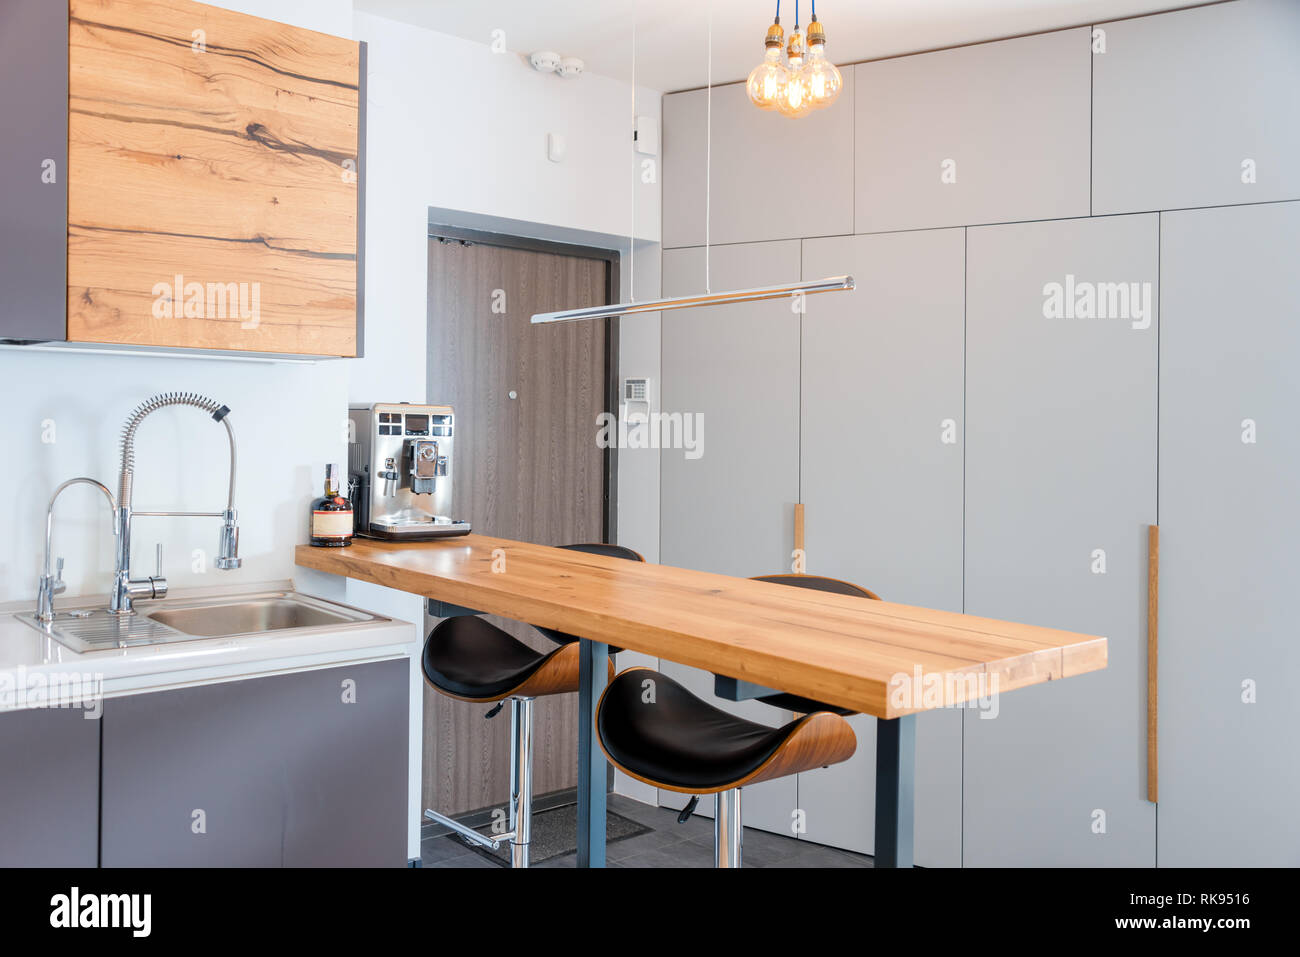 Modern Kitchen Interior With Lights On Brown Wooden Table And Bar Stools Coffee Machine Contemporary Interior With Loft Elements Stock Photo Alamy